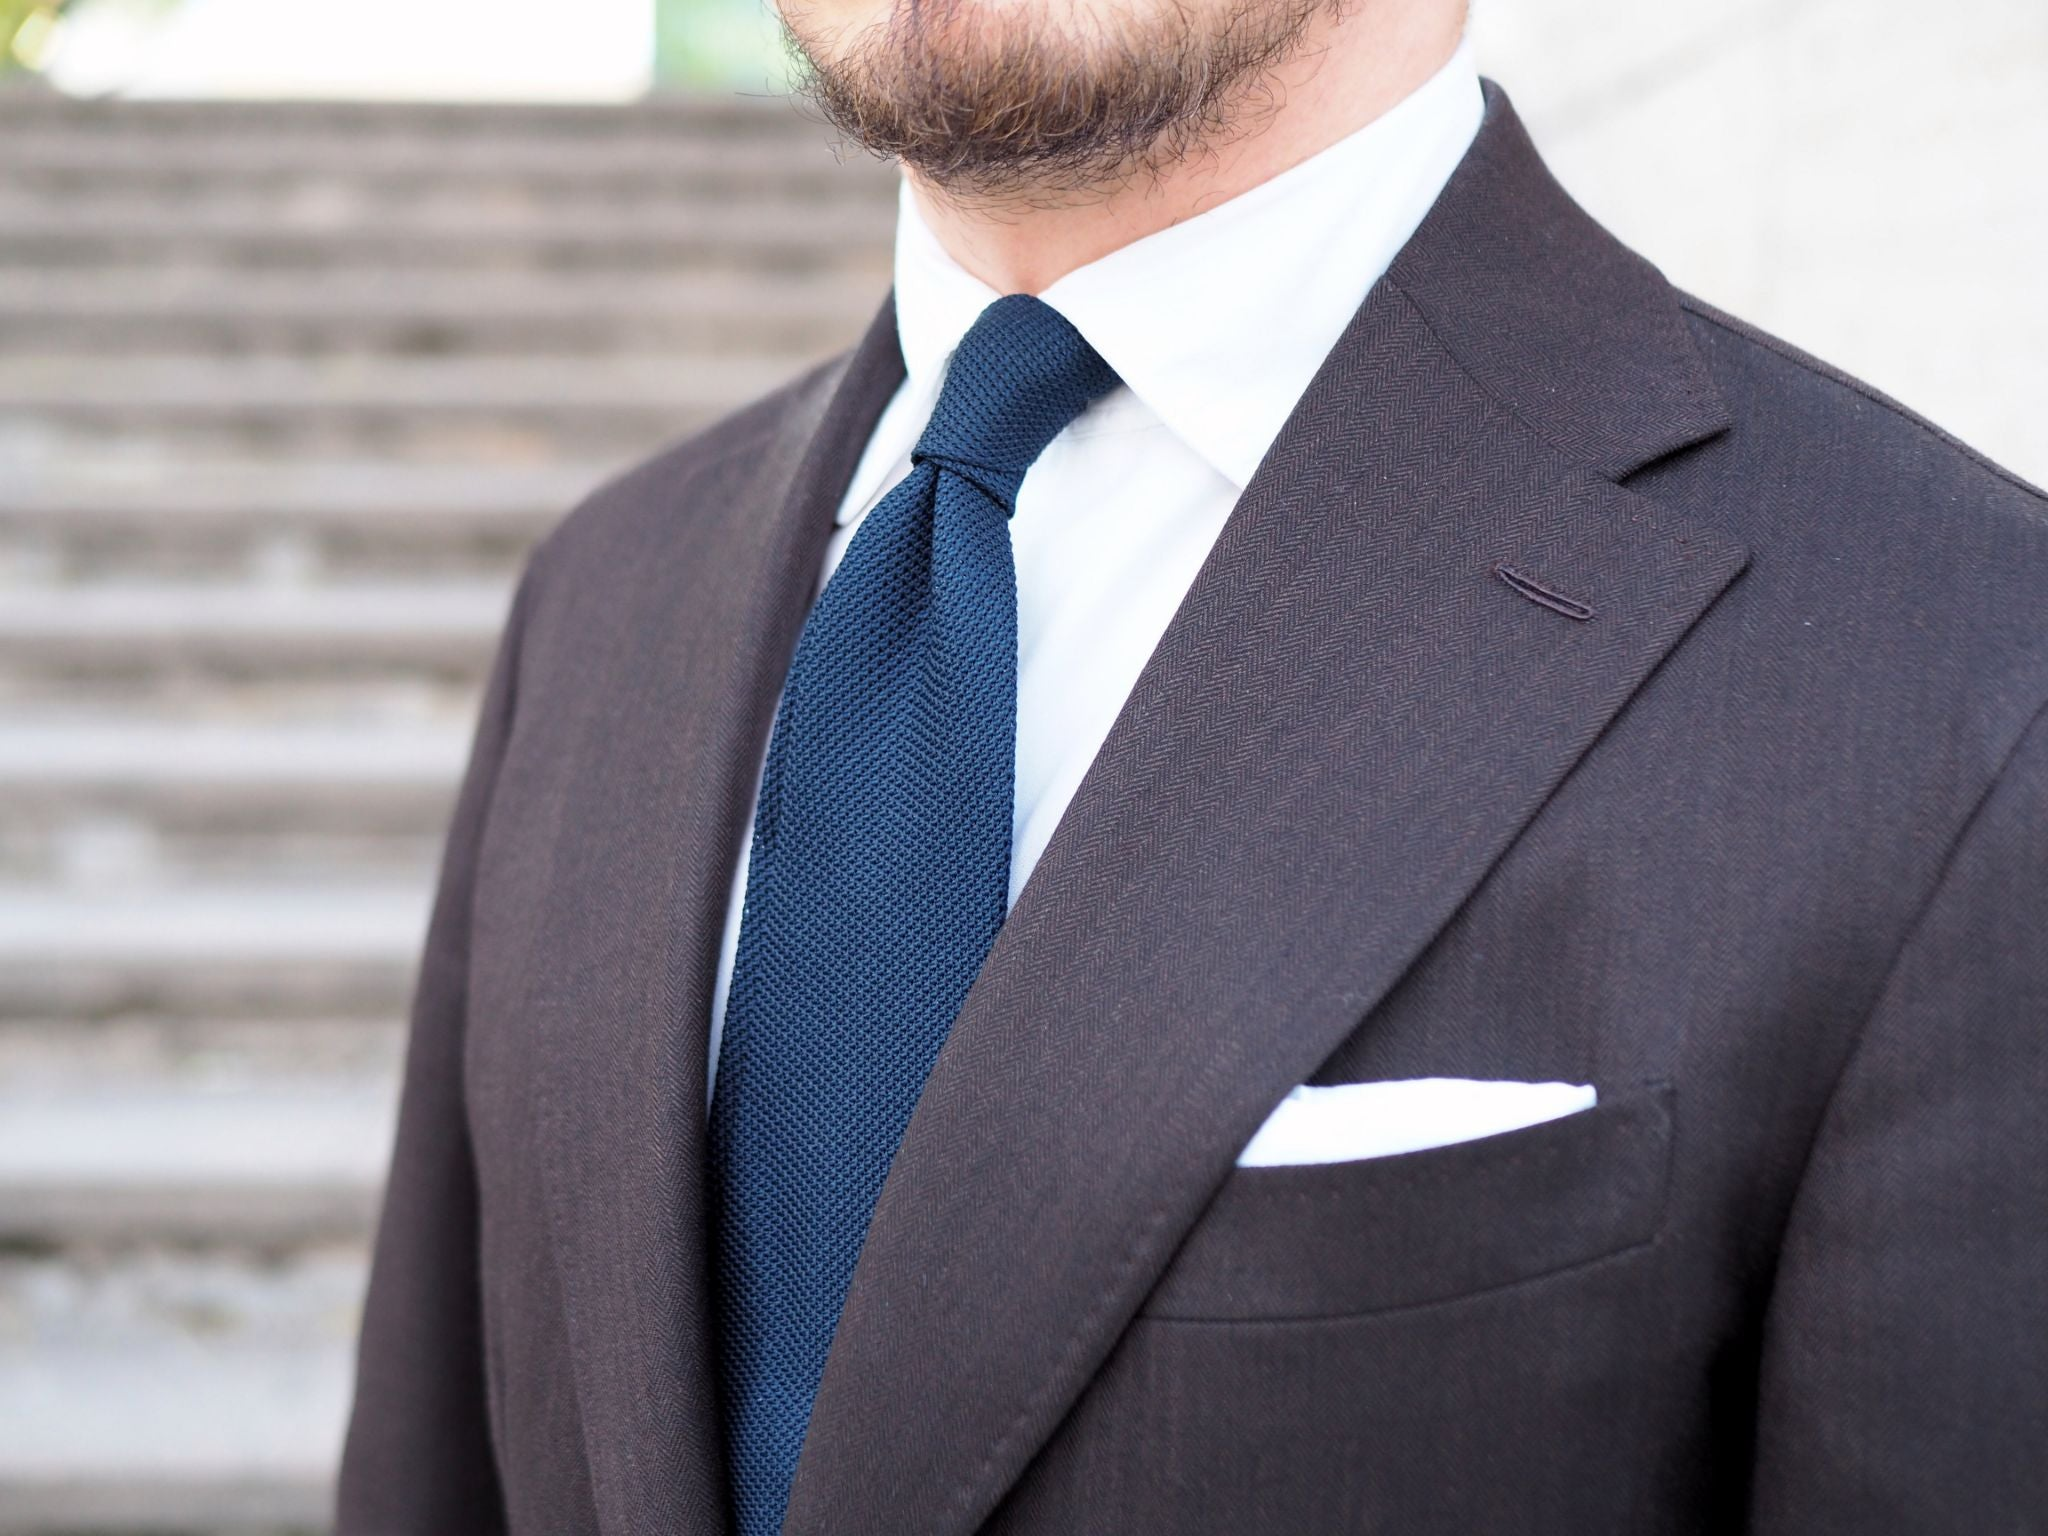 Brown business suit - the double four-in-hand knot and navy blue DLA grenadine tie